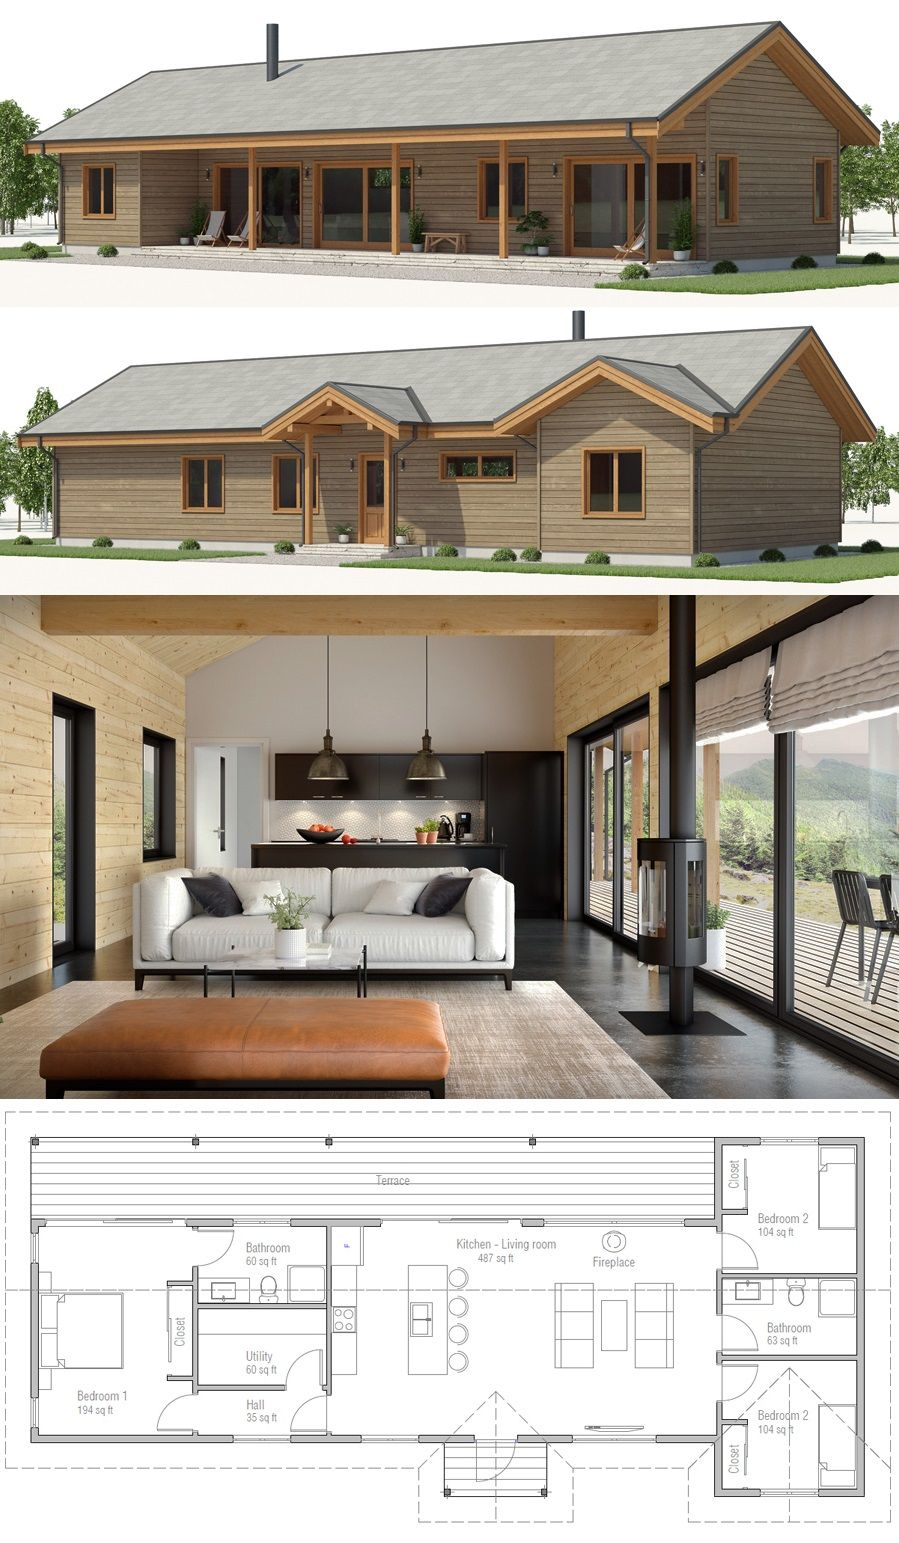 House Plan Affordable To Build Home Home Affordable House Plans Small House Plans New House Plans